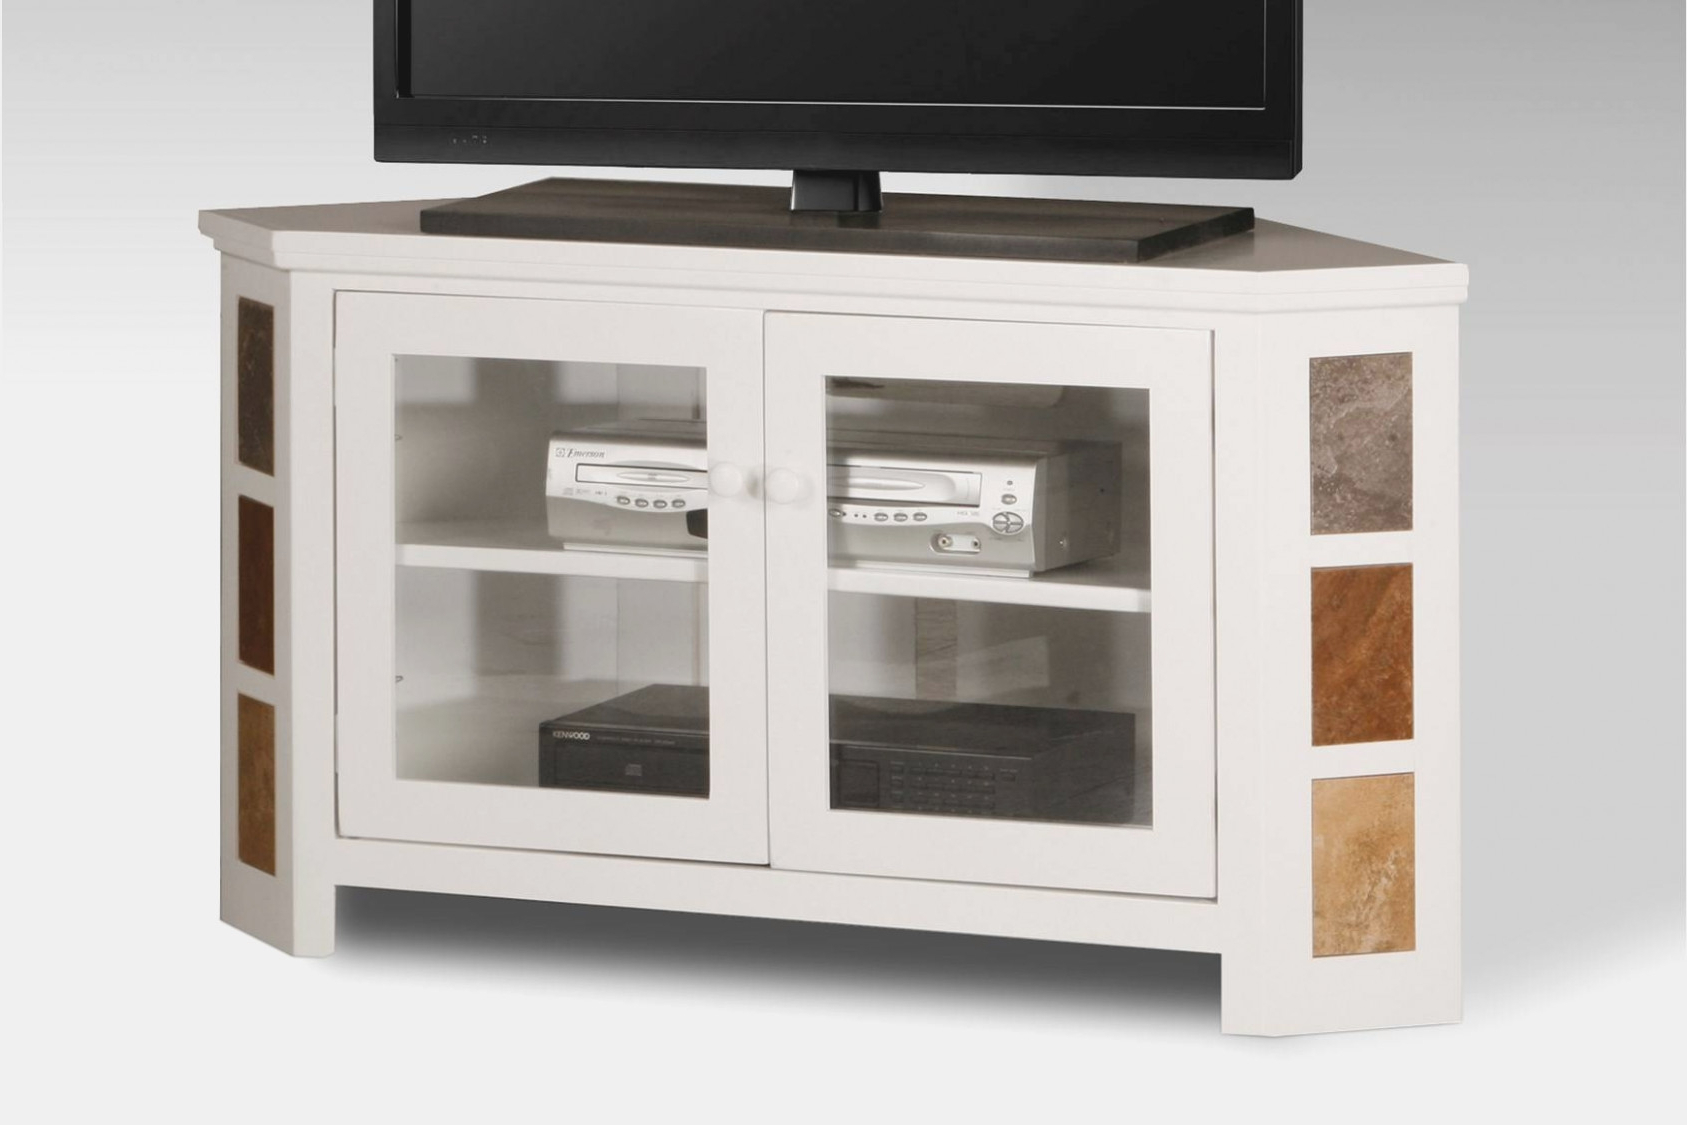 Preferred Corner Tv Cabinet Glass Doors Techlink Bench Piano Black Stand With Pertaining To Corner Tv Cabinets With Glass Doors (View 4 of 20)